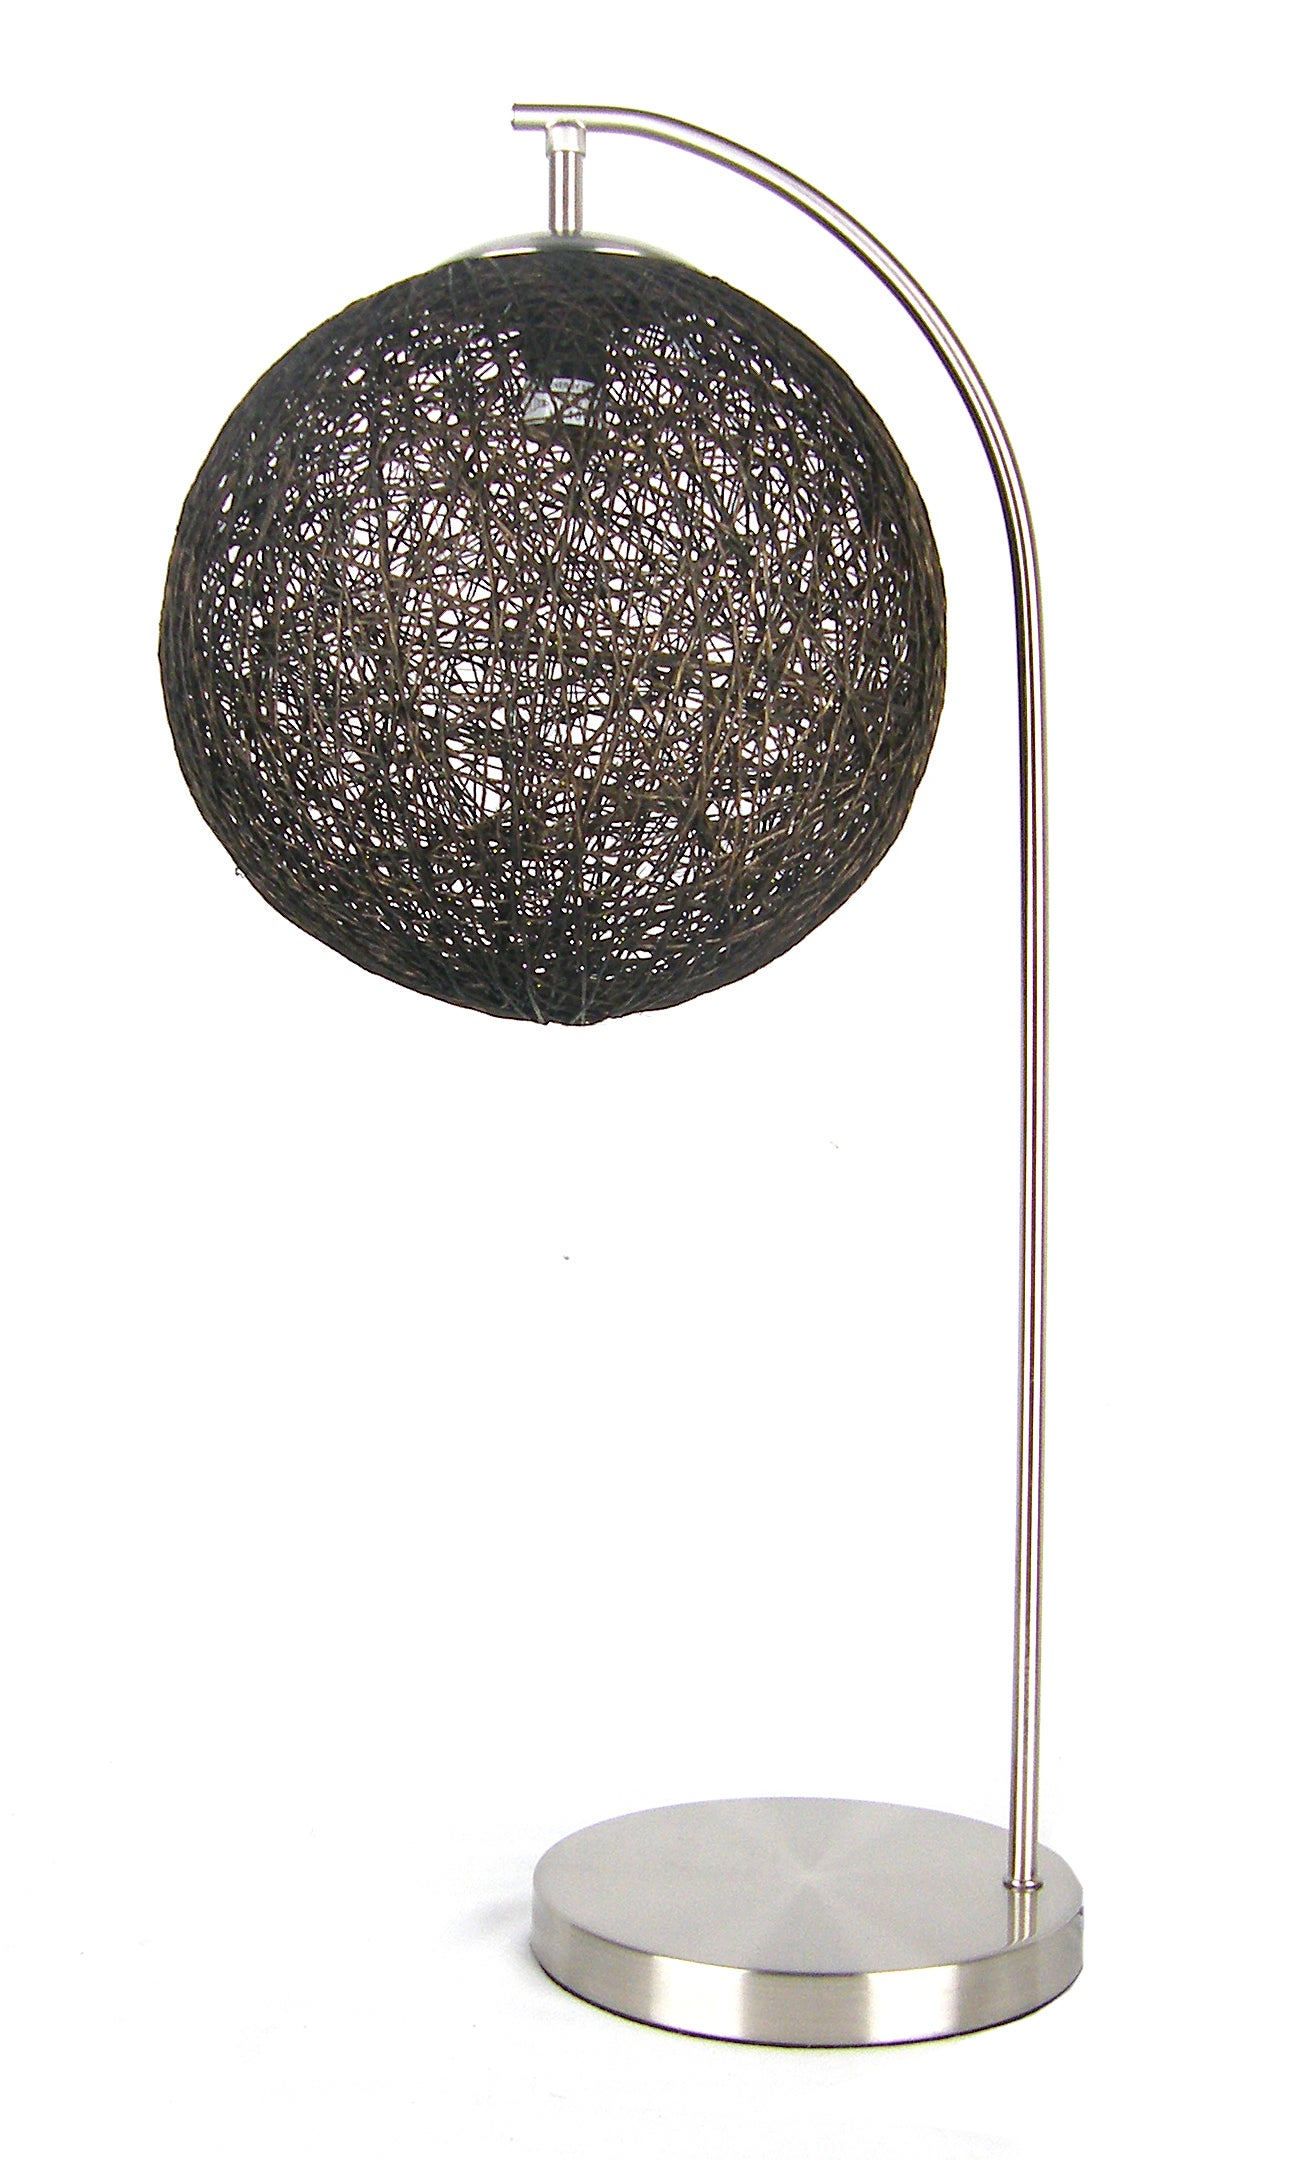 Abaca Ball Table Lamp